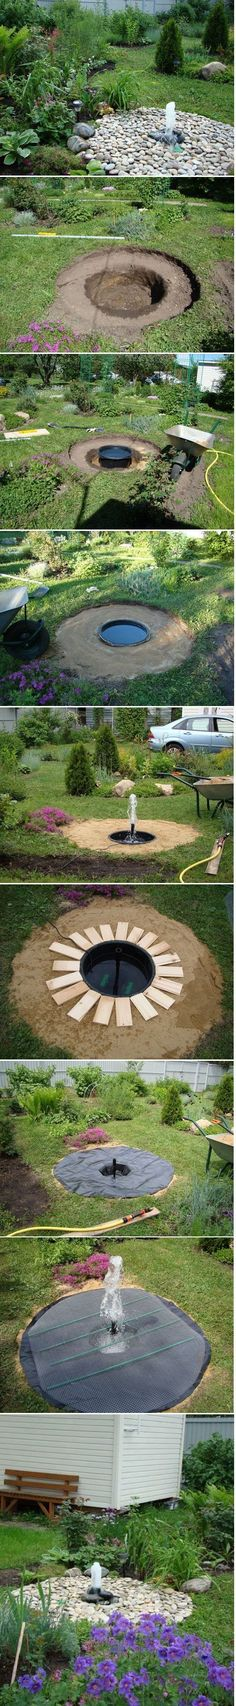 DIY Backyard Buried Fountain: